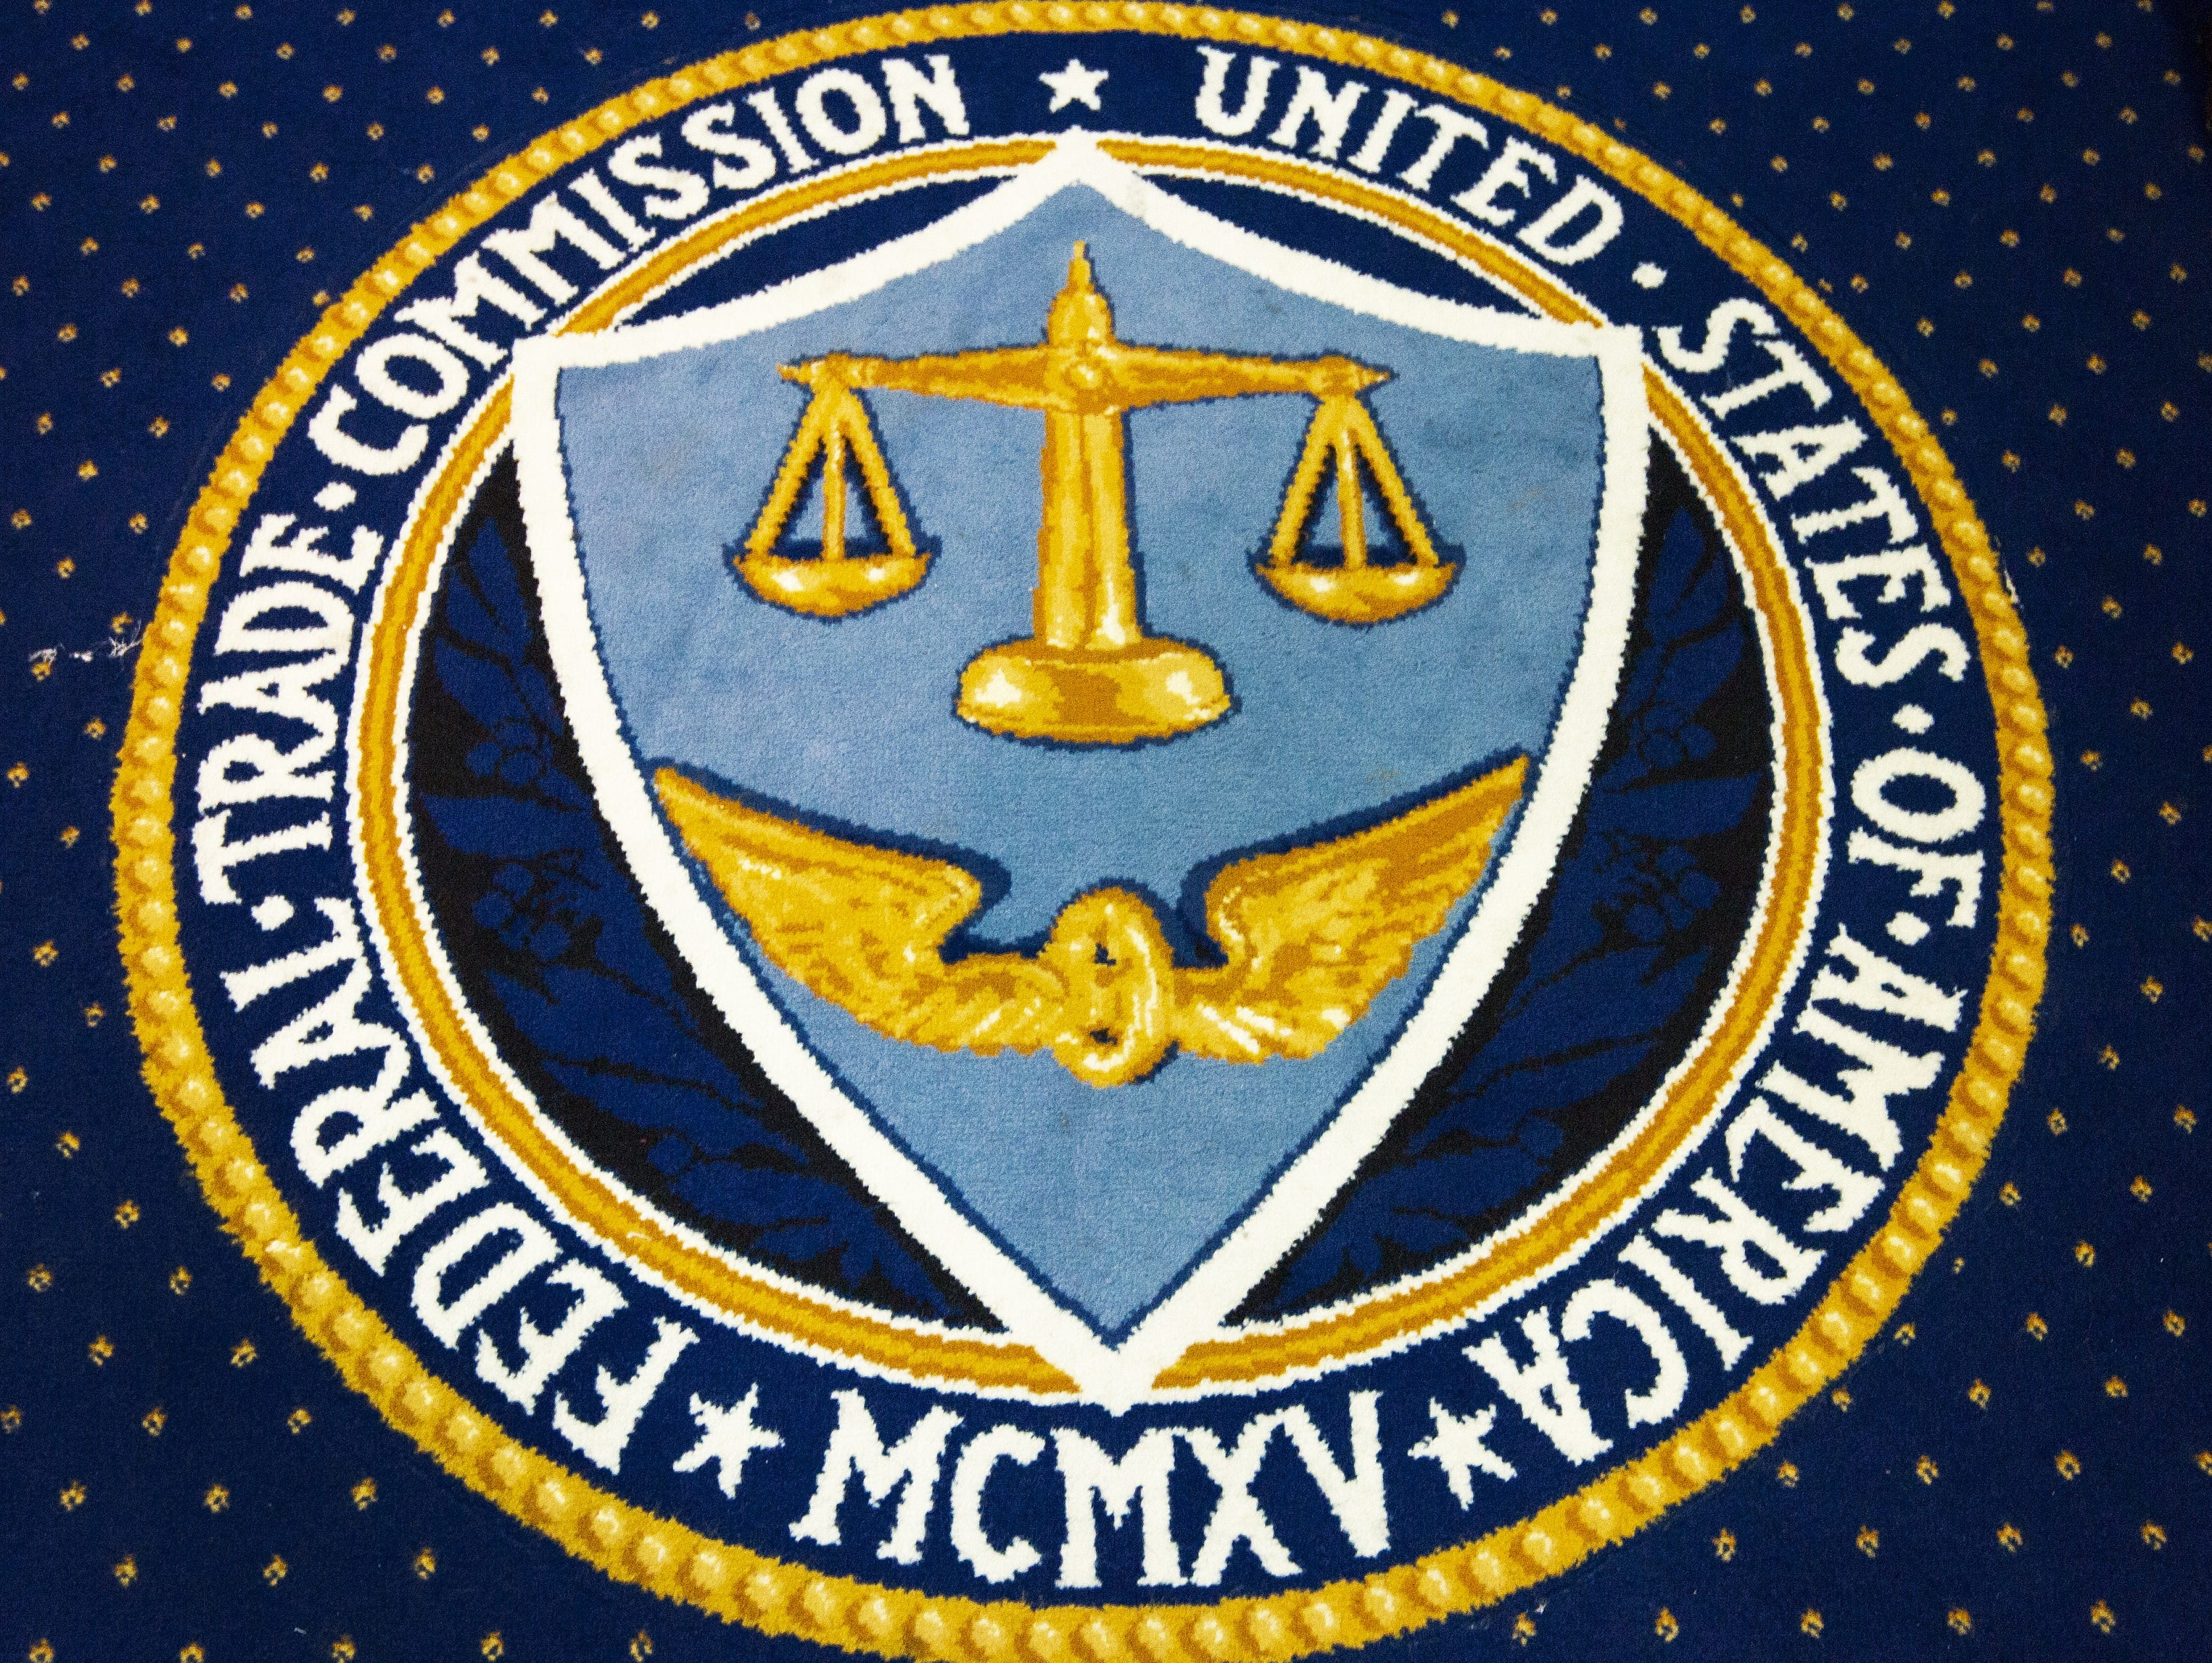 The logo of the Federal Trade Commission is seen sewn into the carpet in their Commissioner's Conference Room inside the FTC headquarters in Washington, D.C.